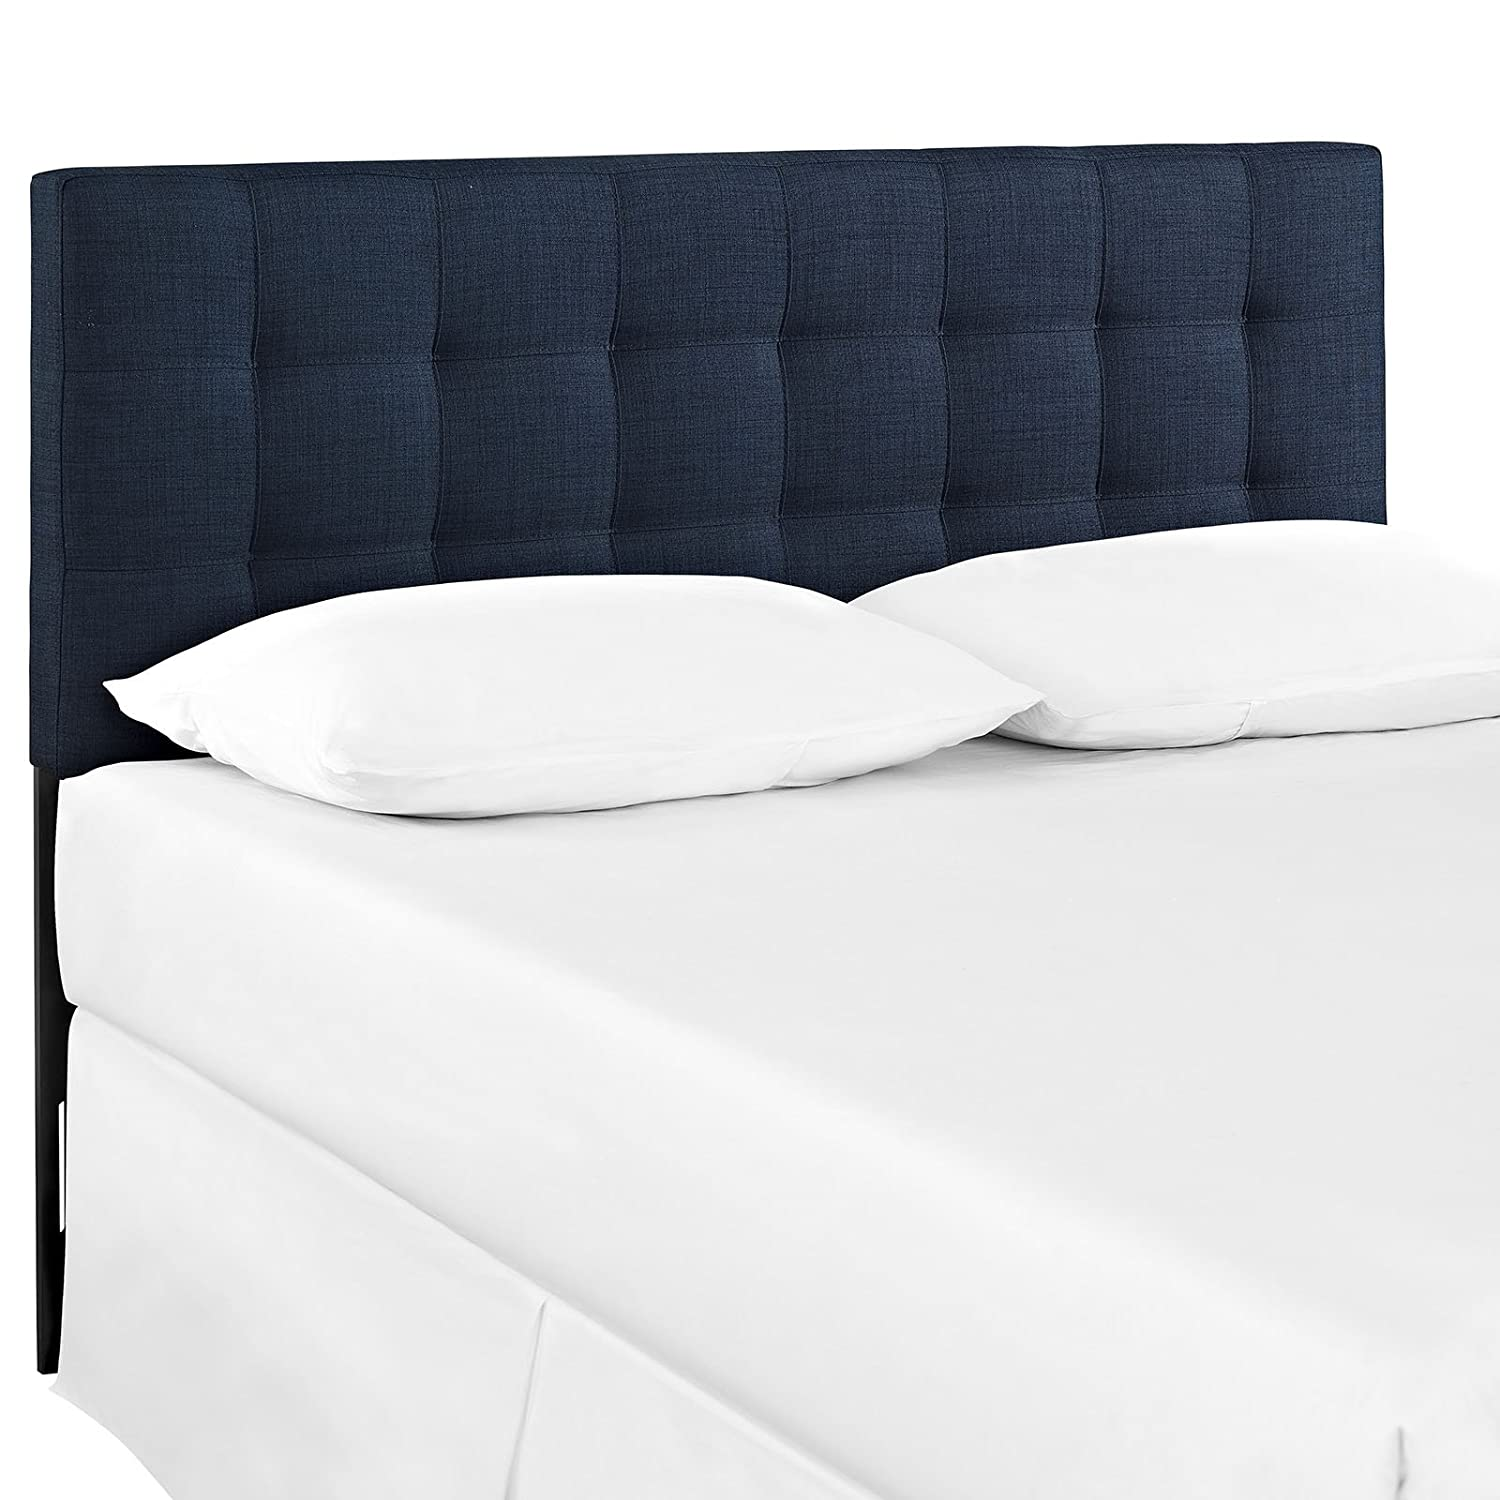 Amazoncom Modway Lily Deep Tufted Polyester Upholstered Headboard